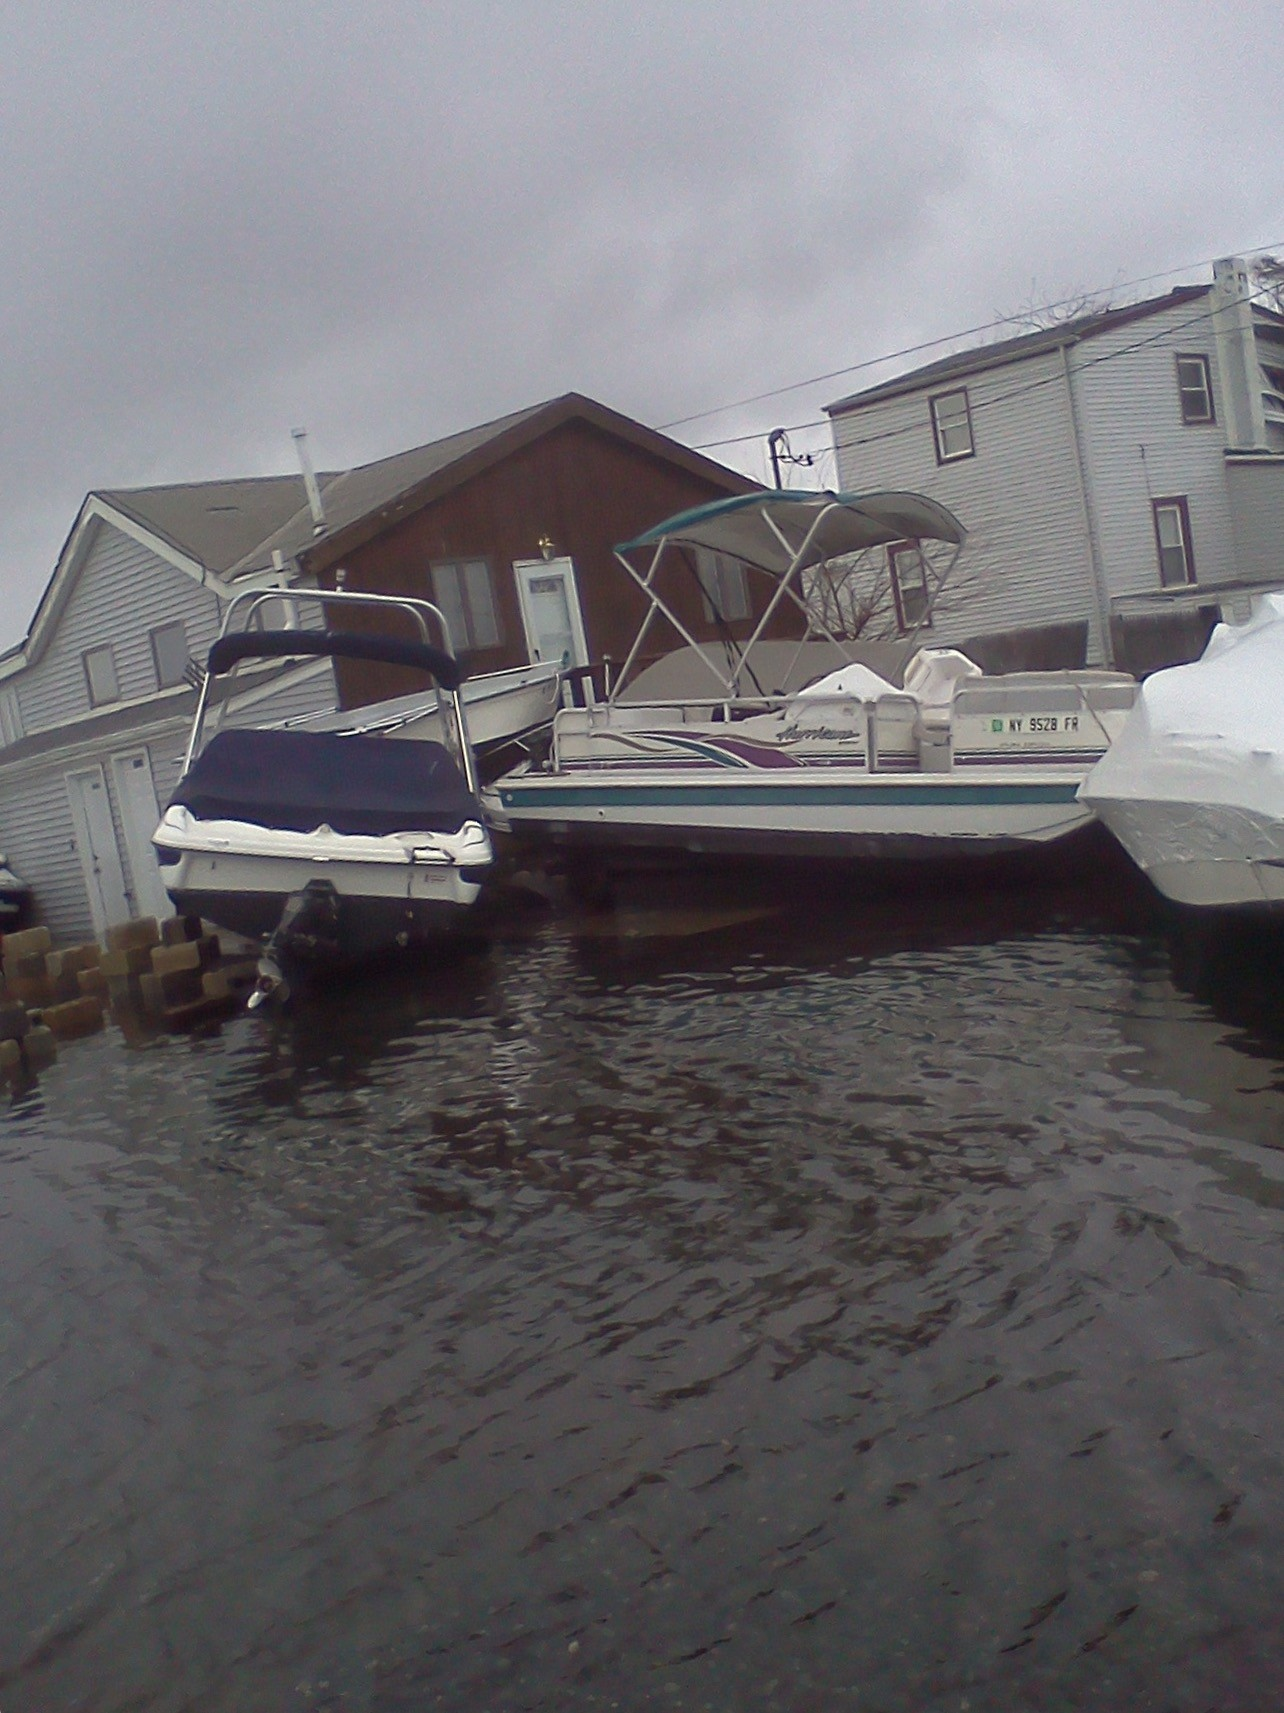 During Hurricane Sandy in 2012, water rushed into many homes and flooded Bay Park.